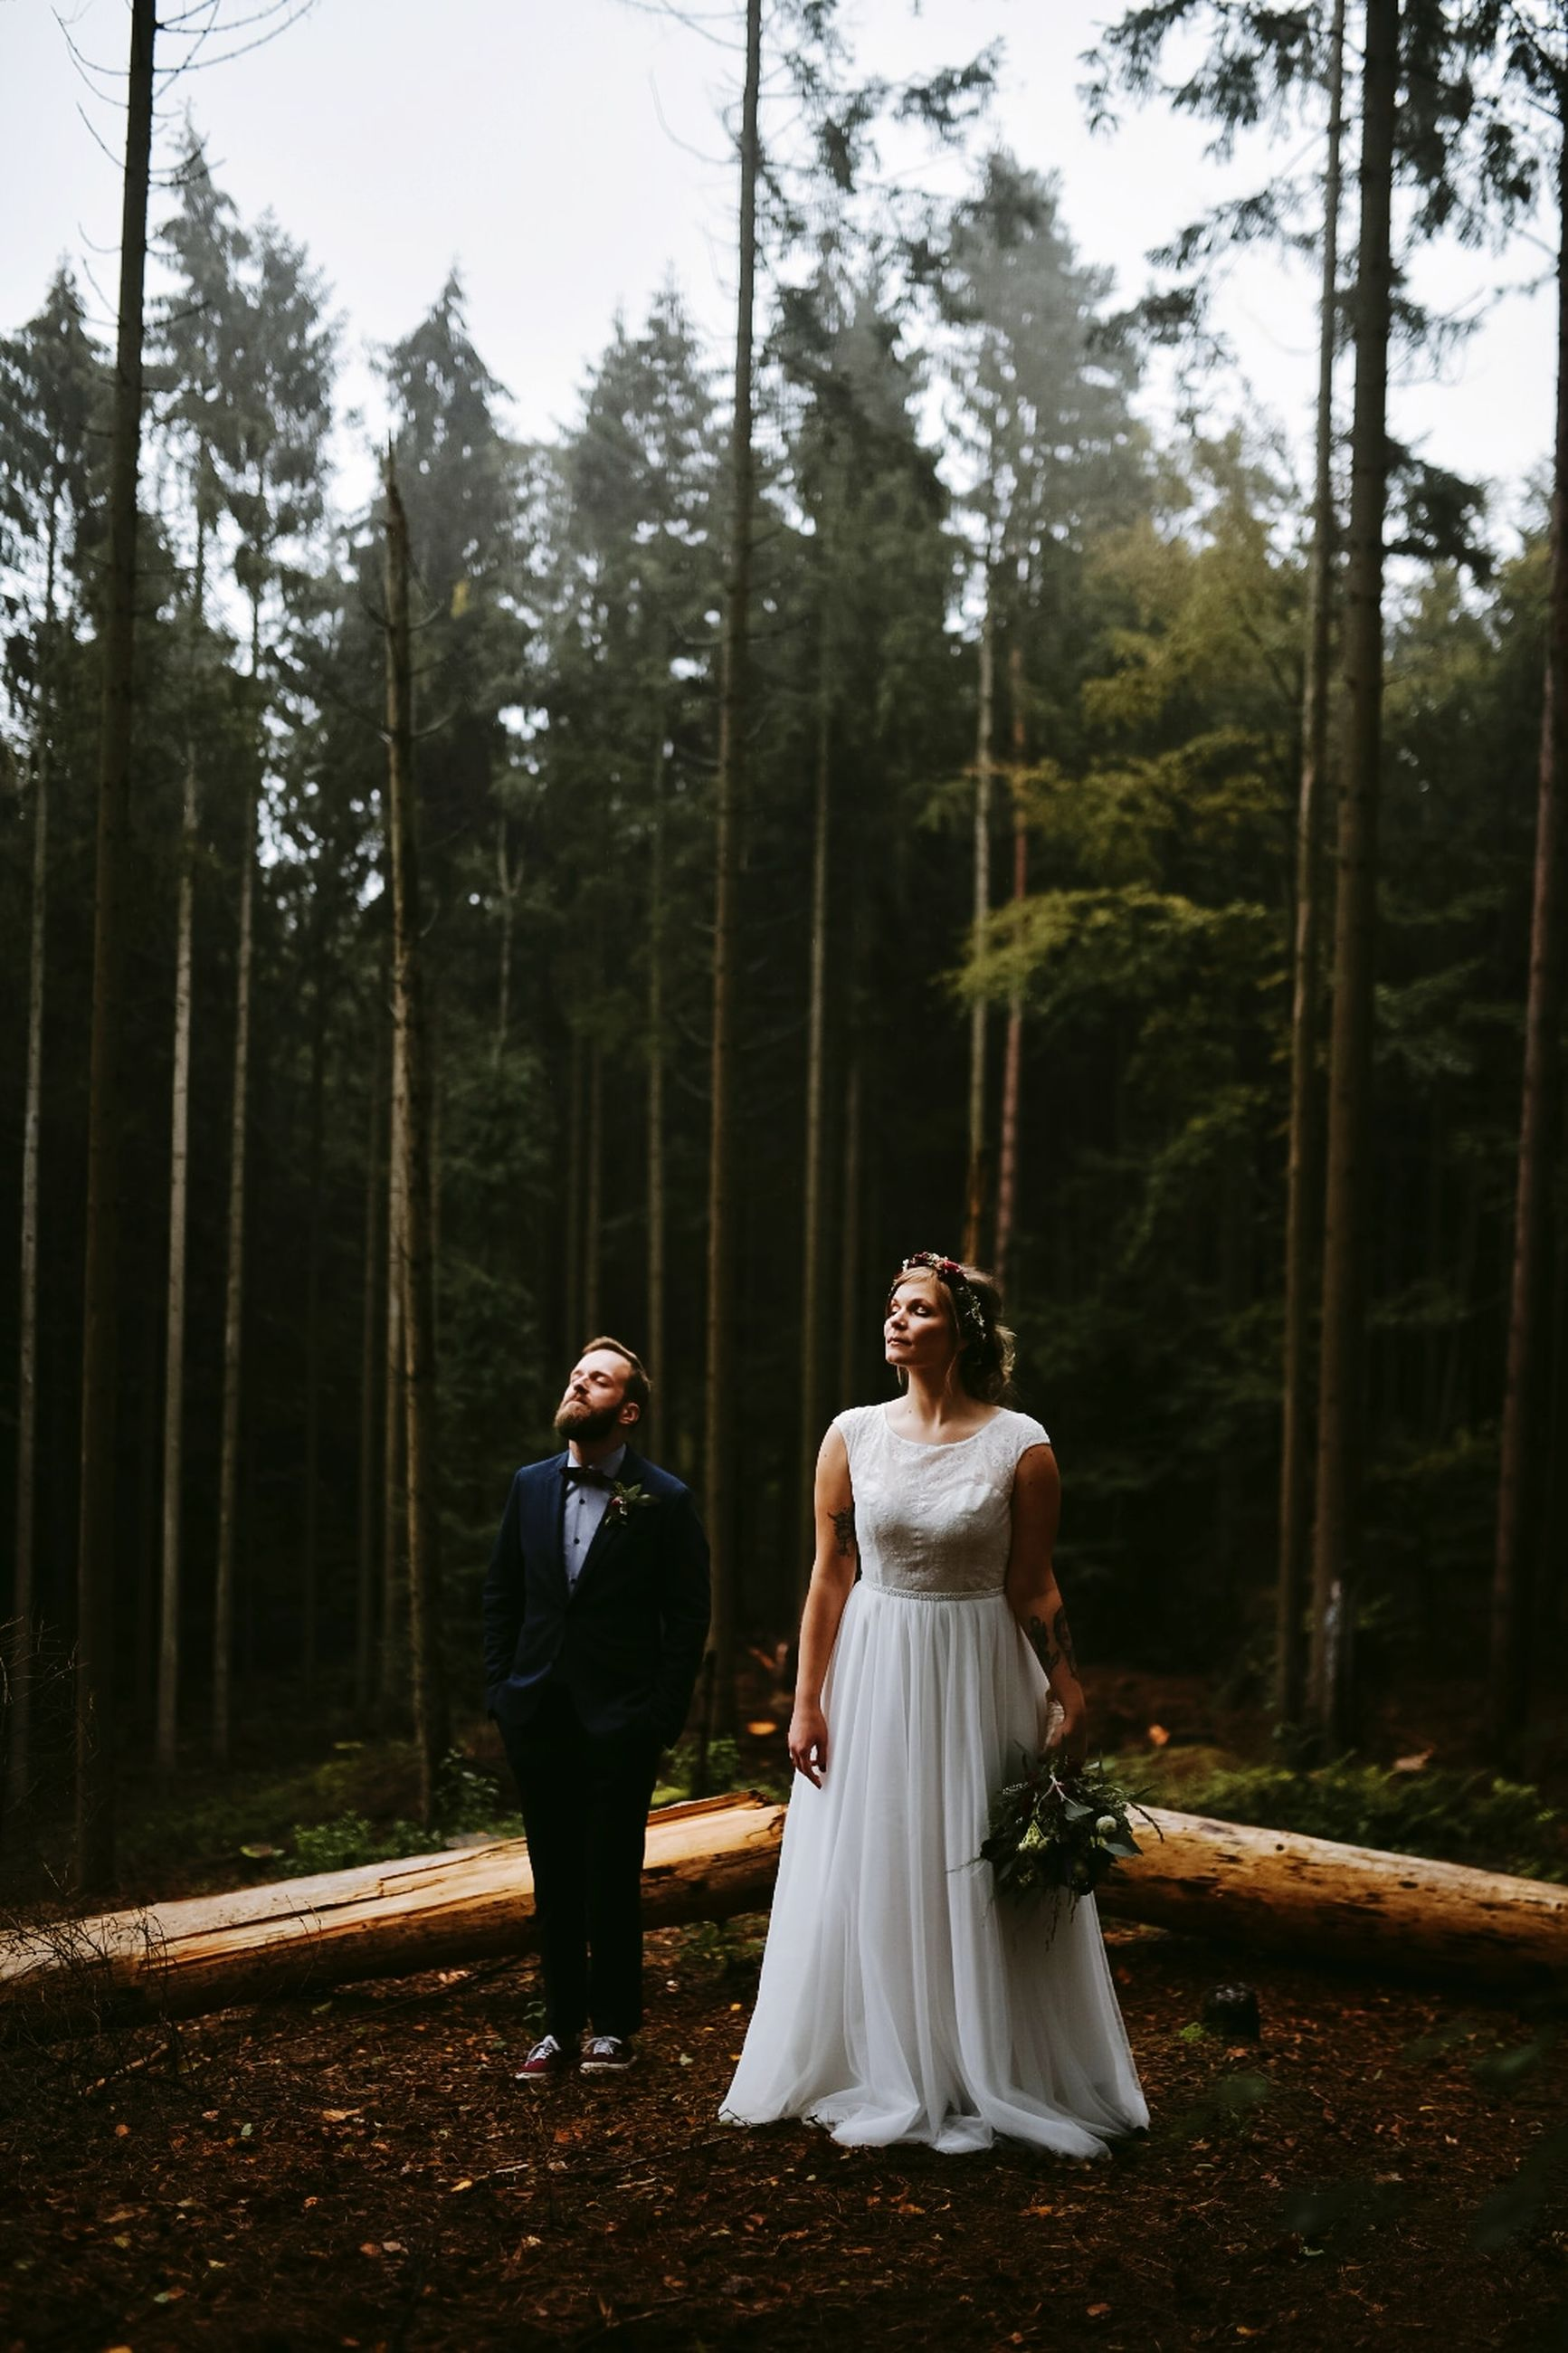 tree, wedding, plant, women, real people, forest, celebration, bride, newlywed, event, adult, lifestyles, wedding dress, full length, land, married, togetherness, nature, love, bridegroom, couple - relationship, positive emotion, woodland, outdoors